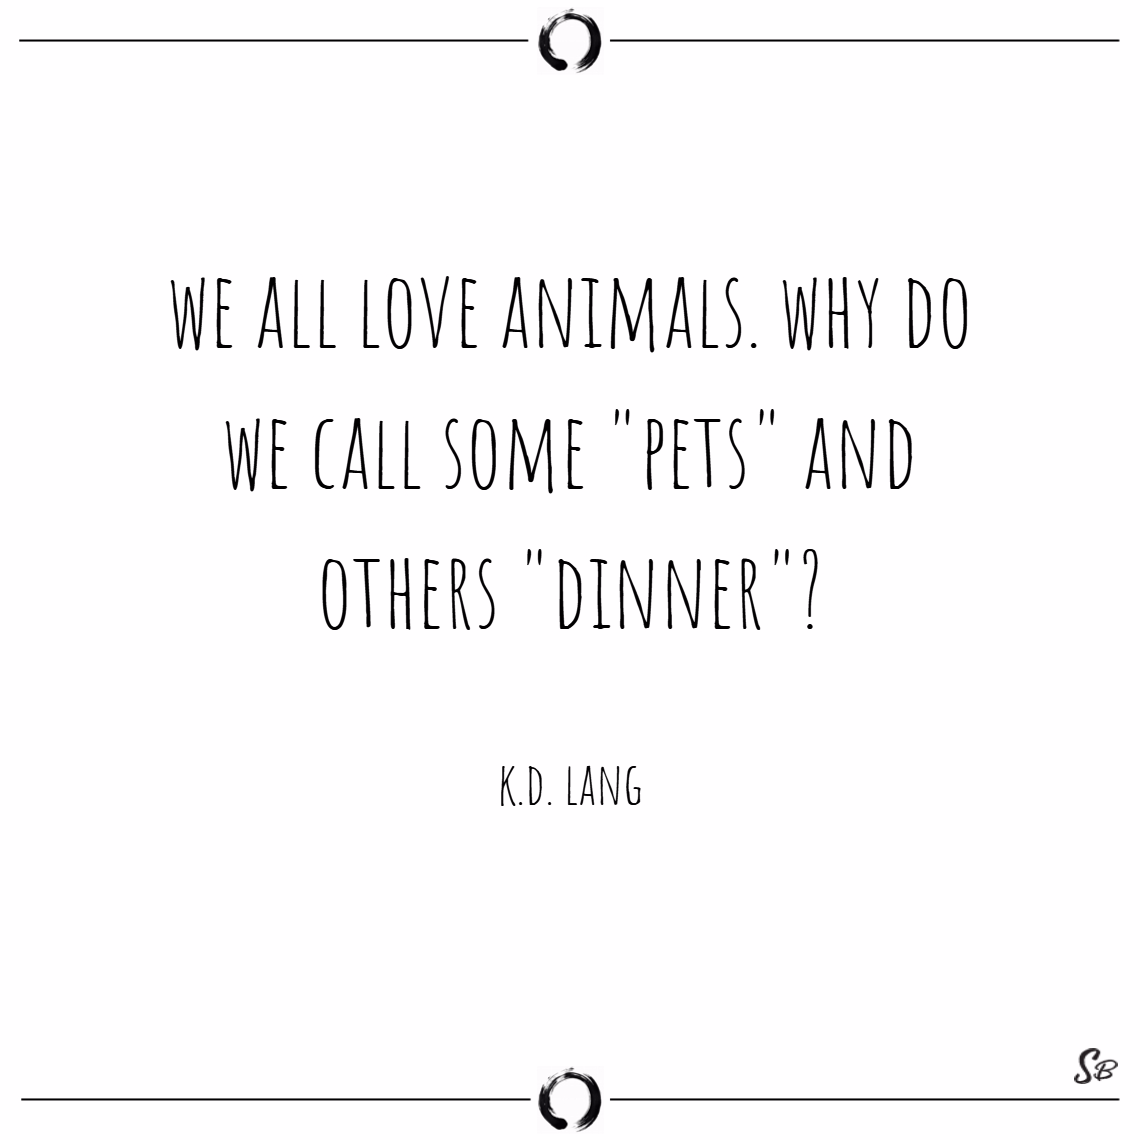 We all love animals. why do we call some pets and others dinner – k.d. lang